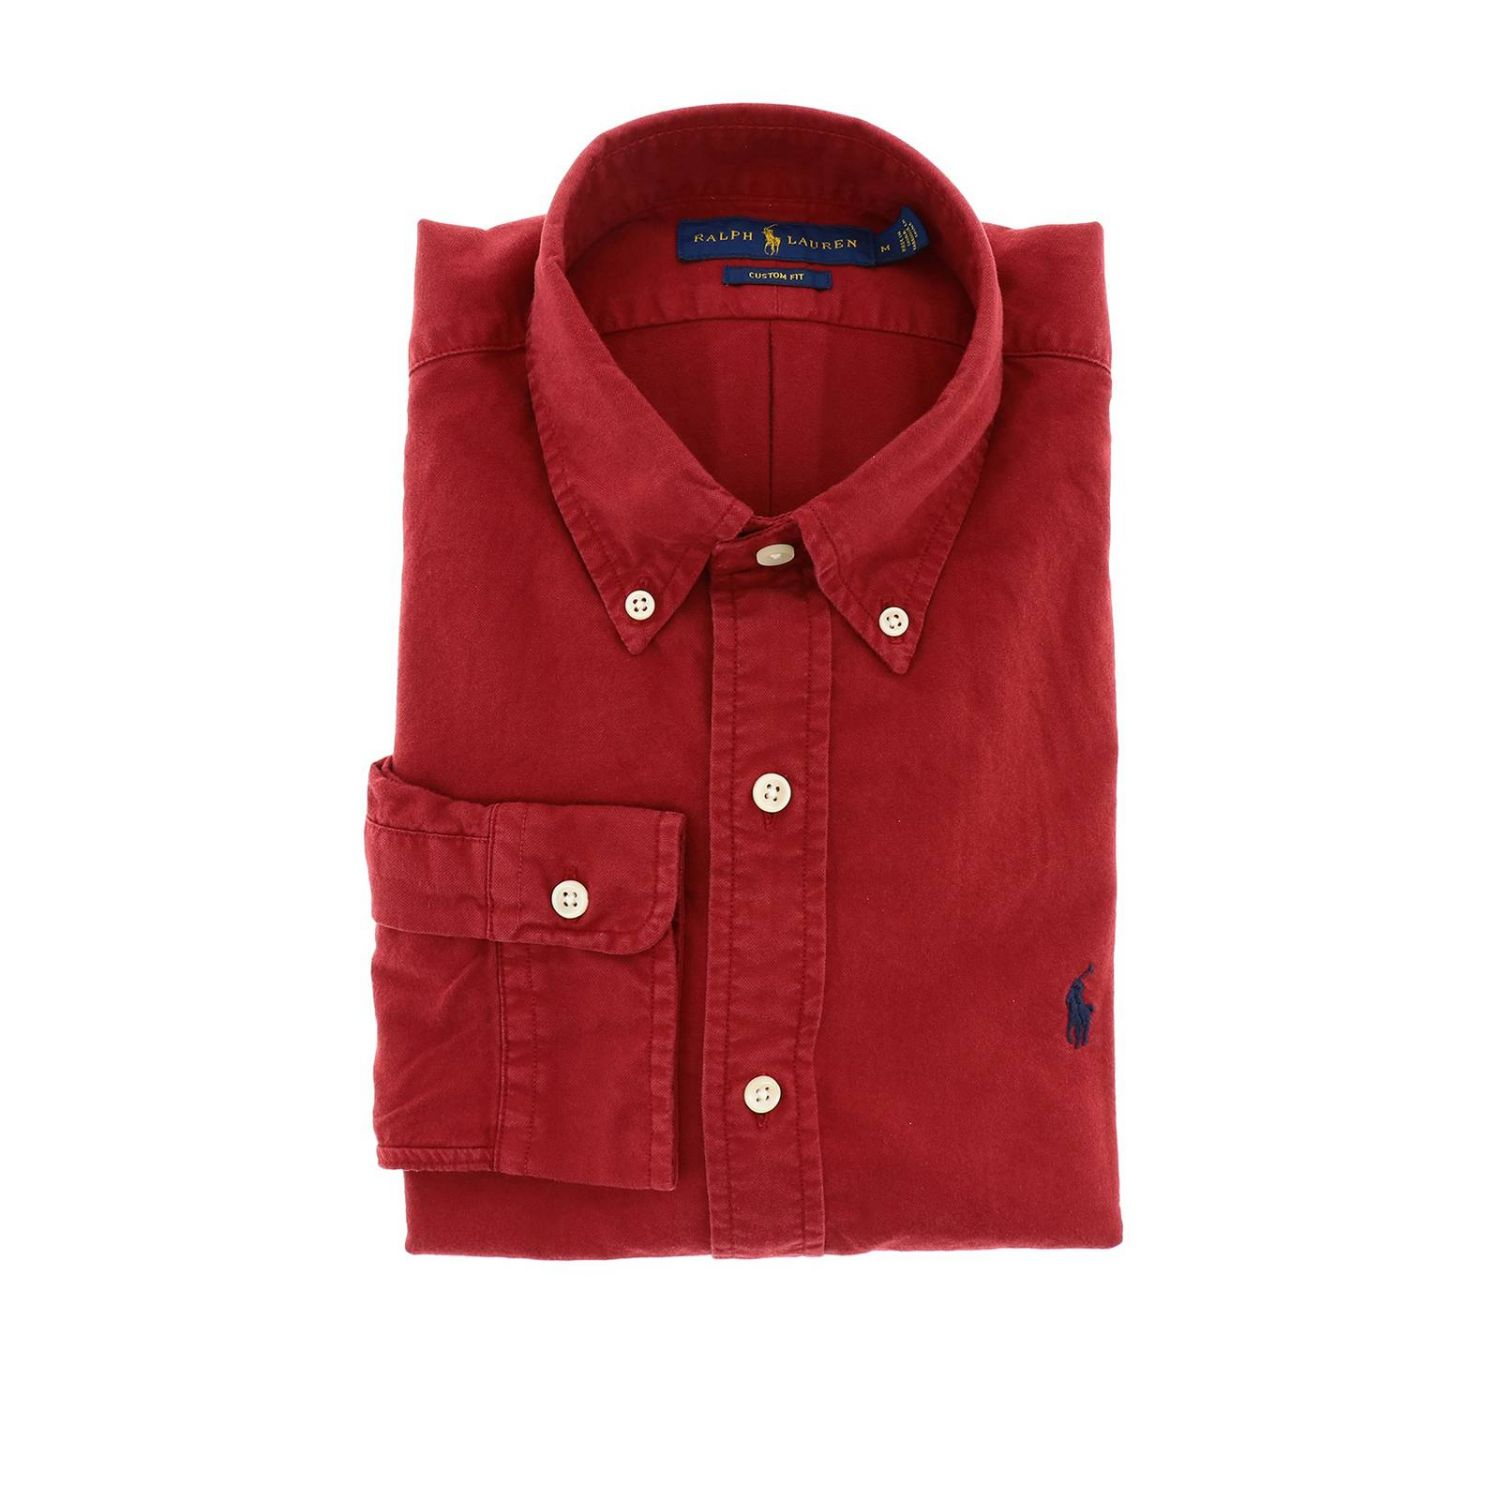 Chemise Oxford custom fit avec col button down et logo Polo Ralph Lauren rouge 1